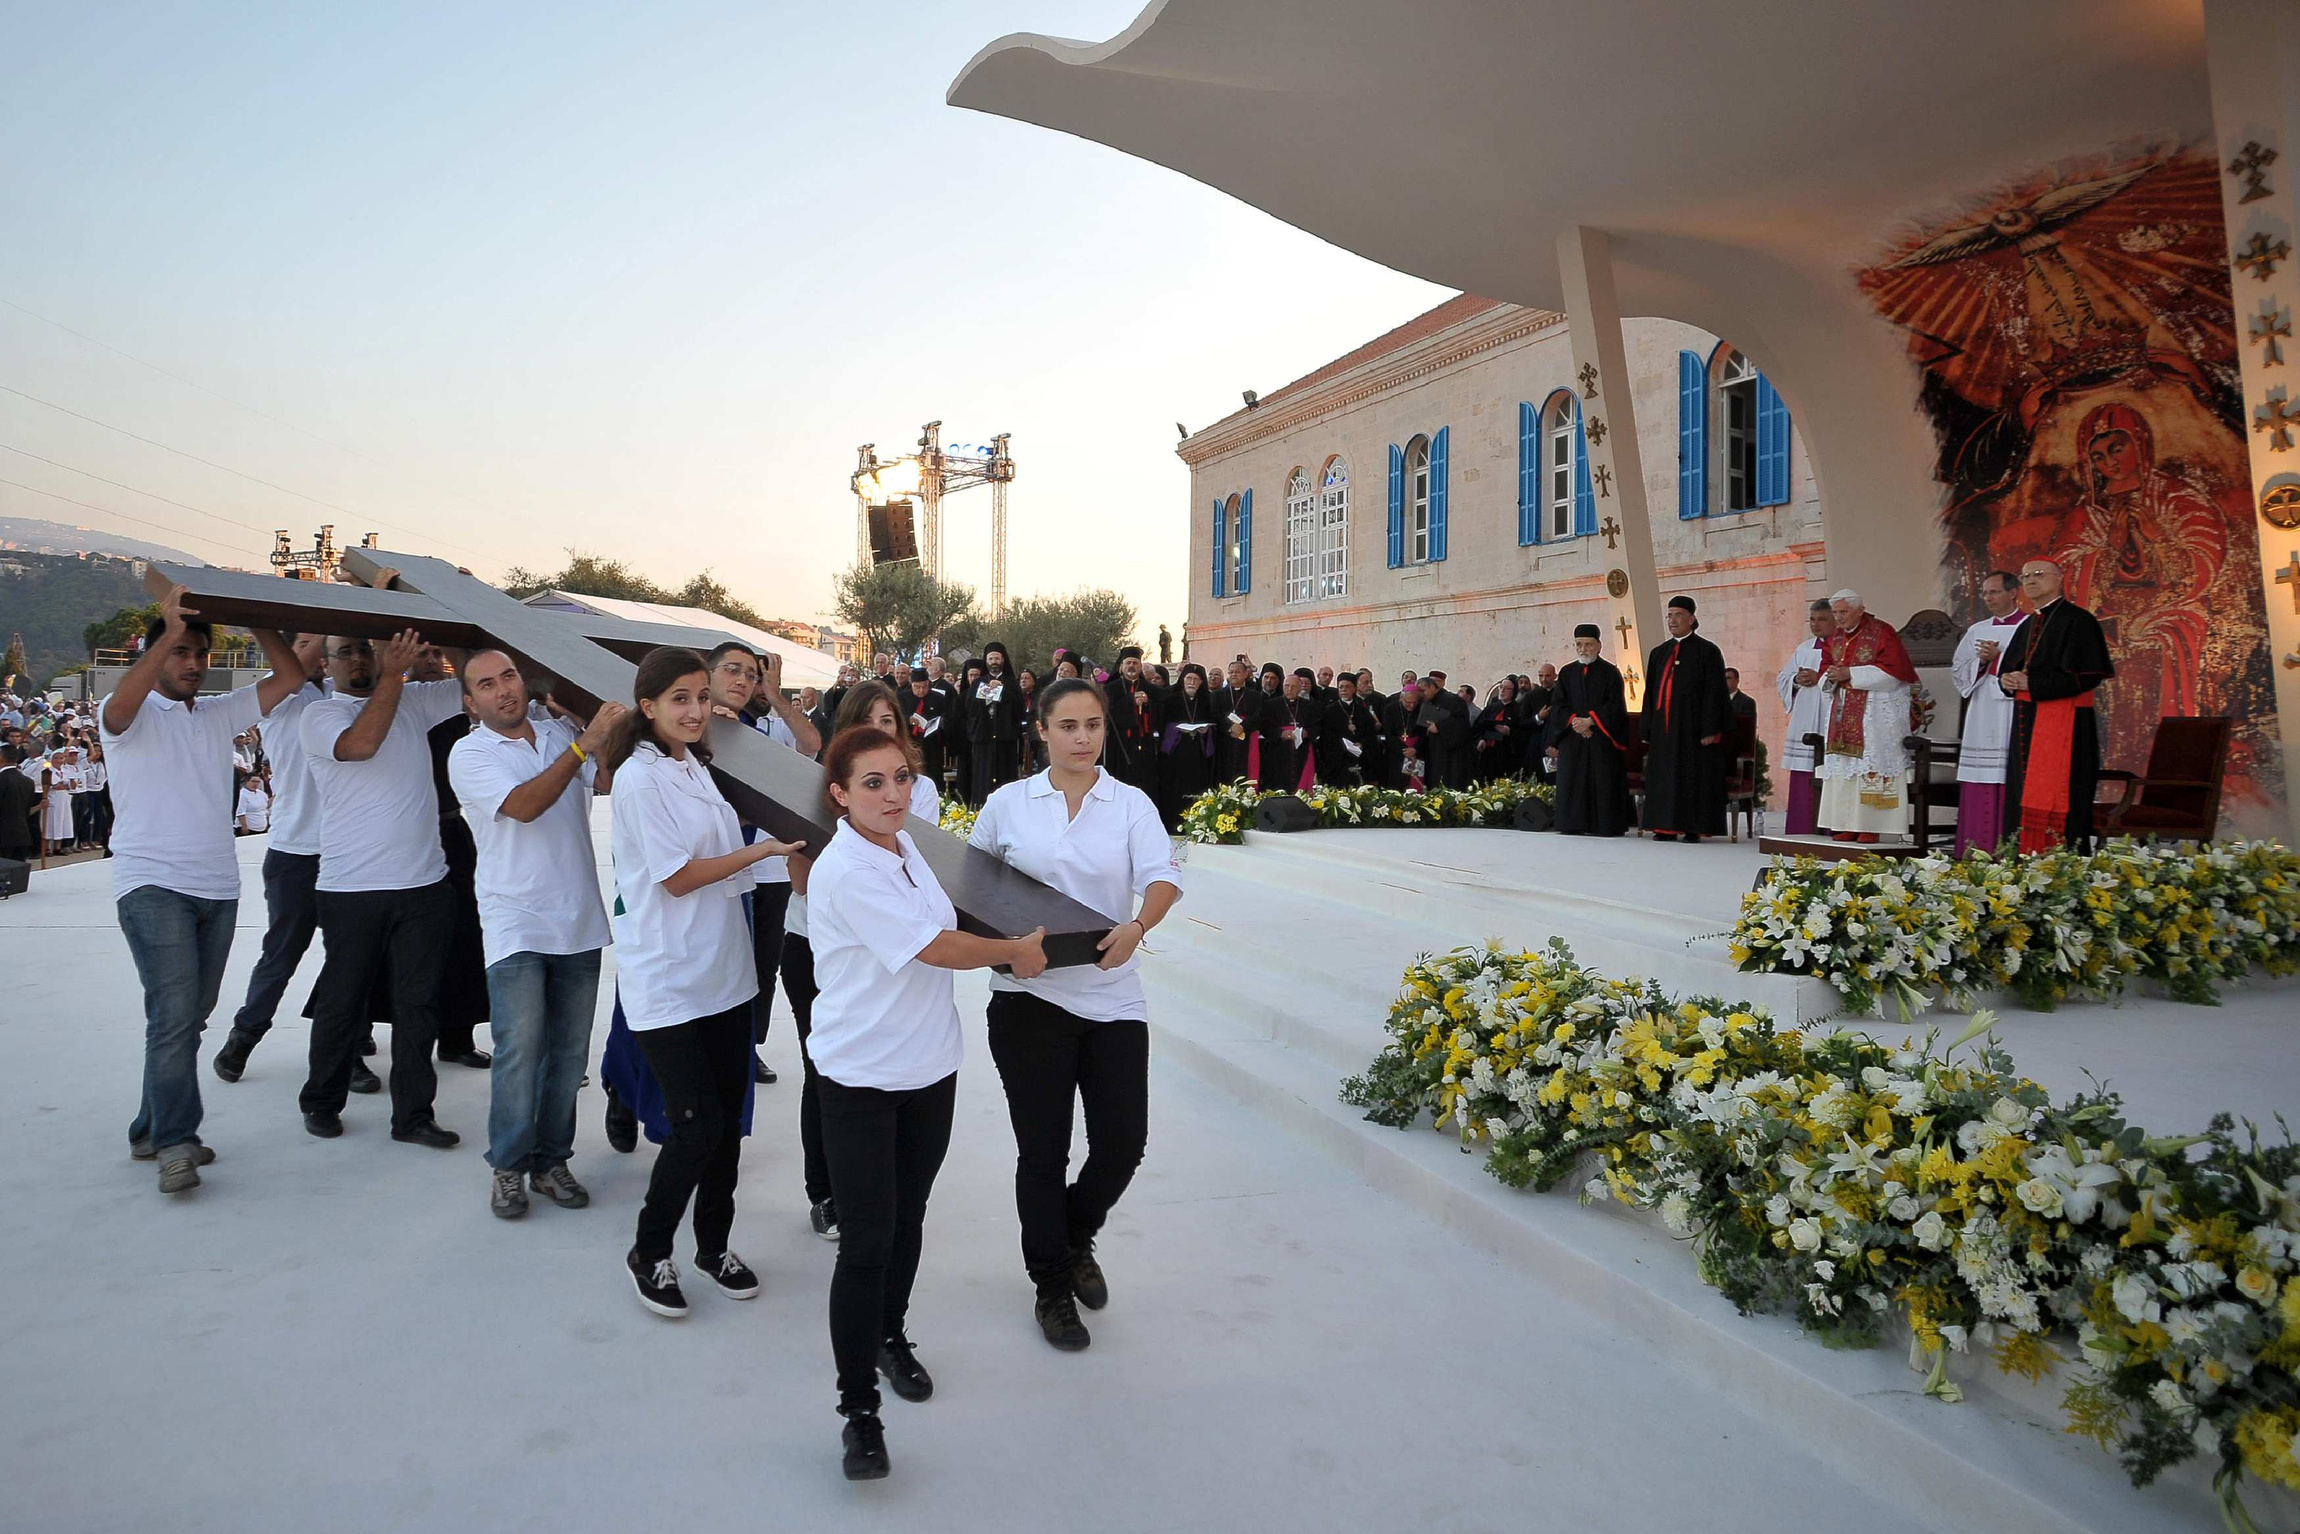 YOUTHS CARRY LARGE CROSS AS POPE BENEDICT MEETS WITH YOUNG PEOPLE IN LEBANON